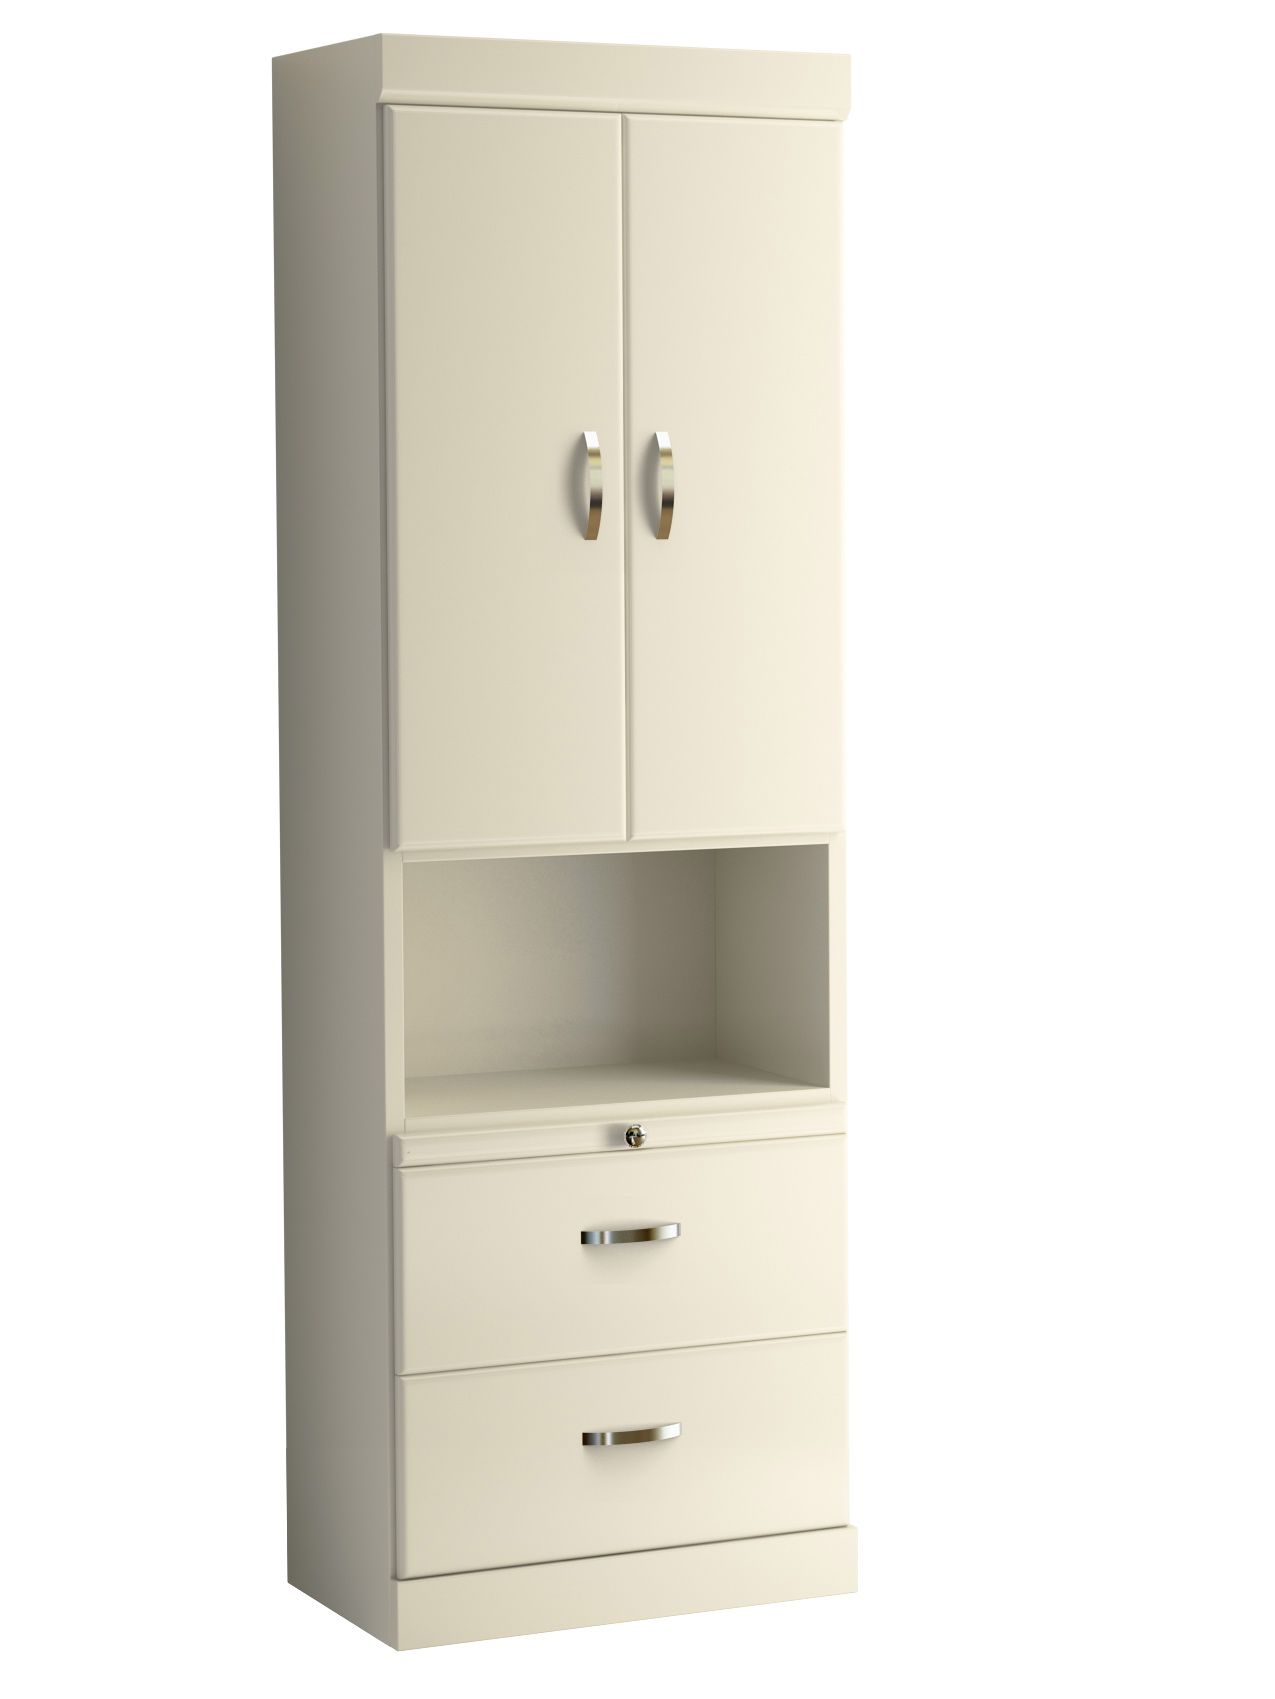 Shaker Style Bookcase with Top Doors and Bottom Drawers in White